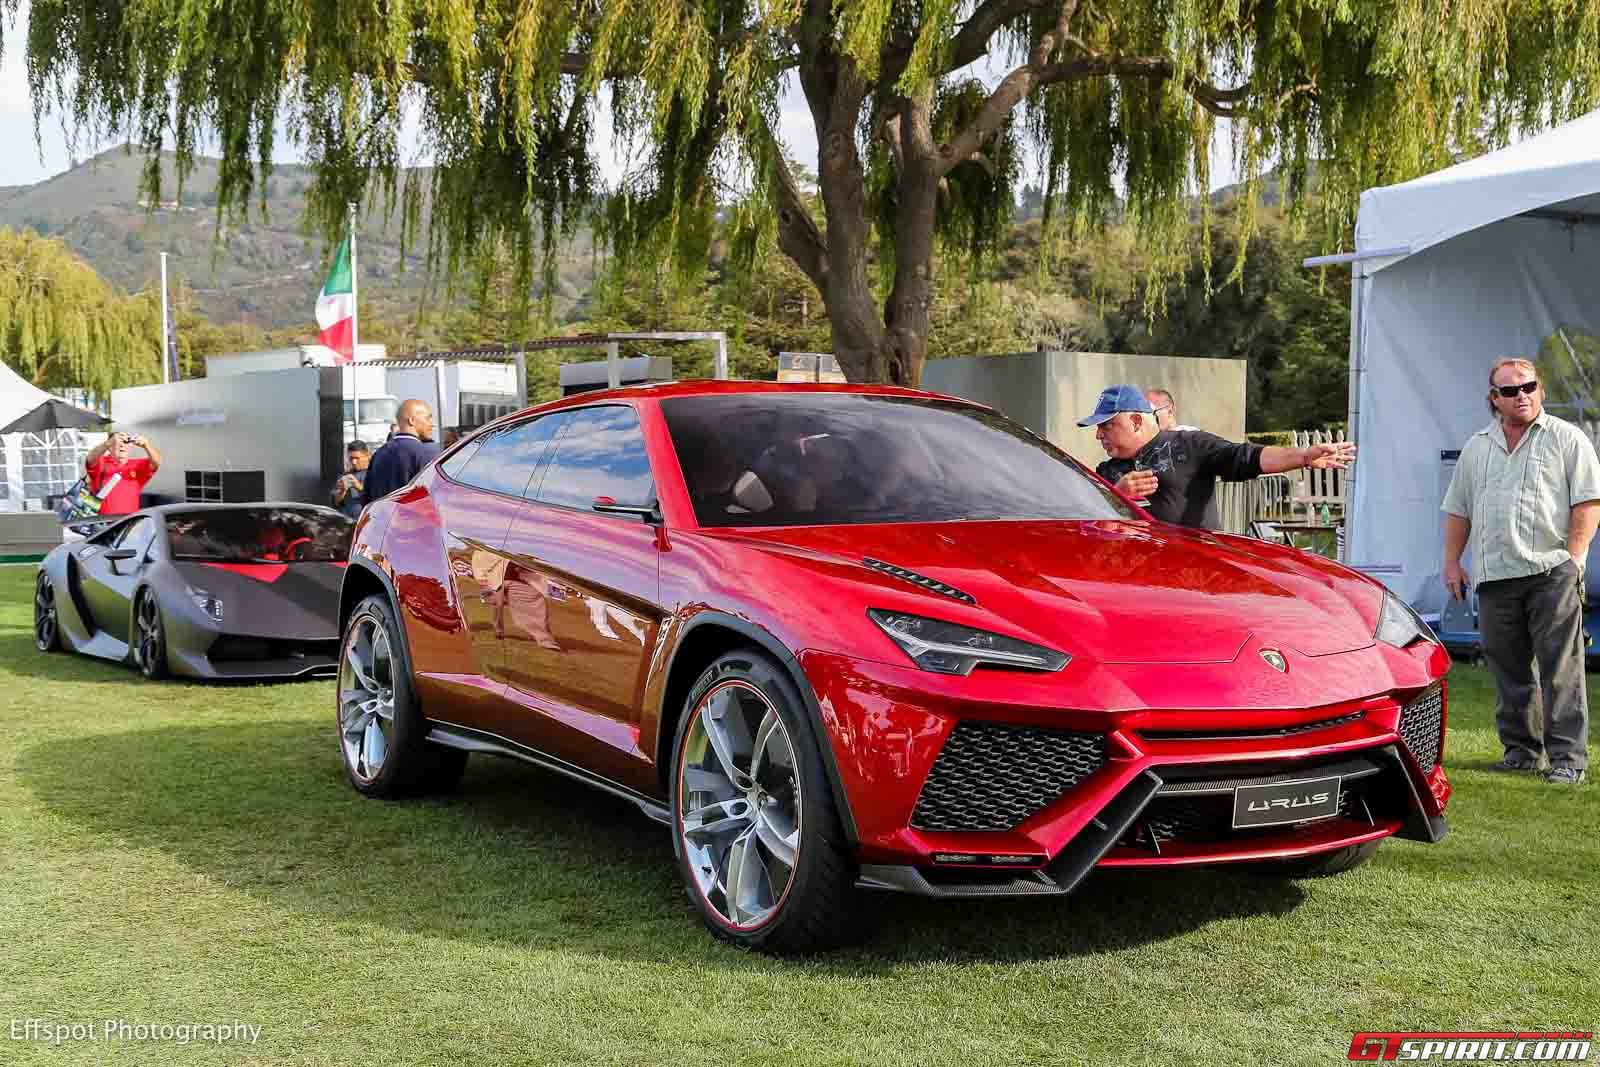 lamborghini suv on schedule for 2018 launch with urus styling gtspirit. Black Bedroom Furniture Sets. Home Design Ideas